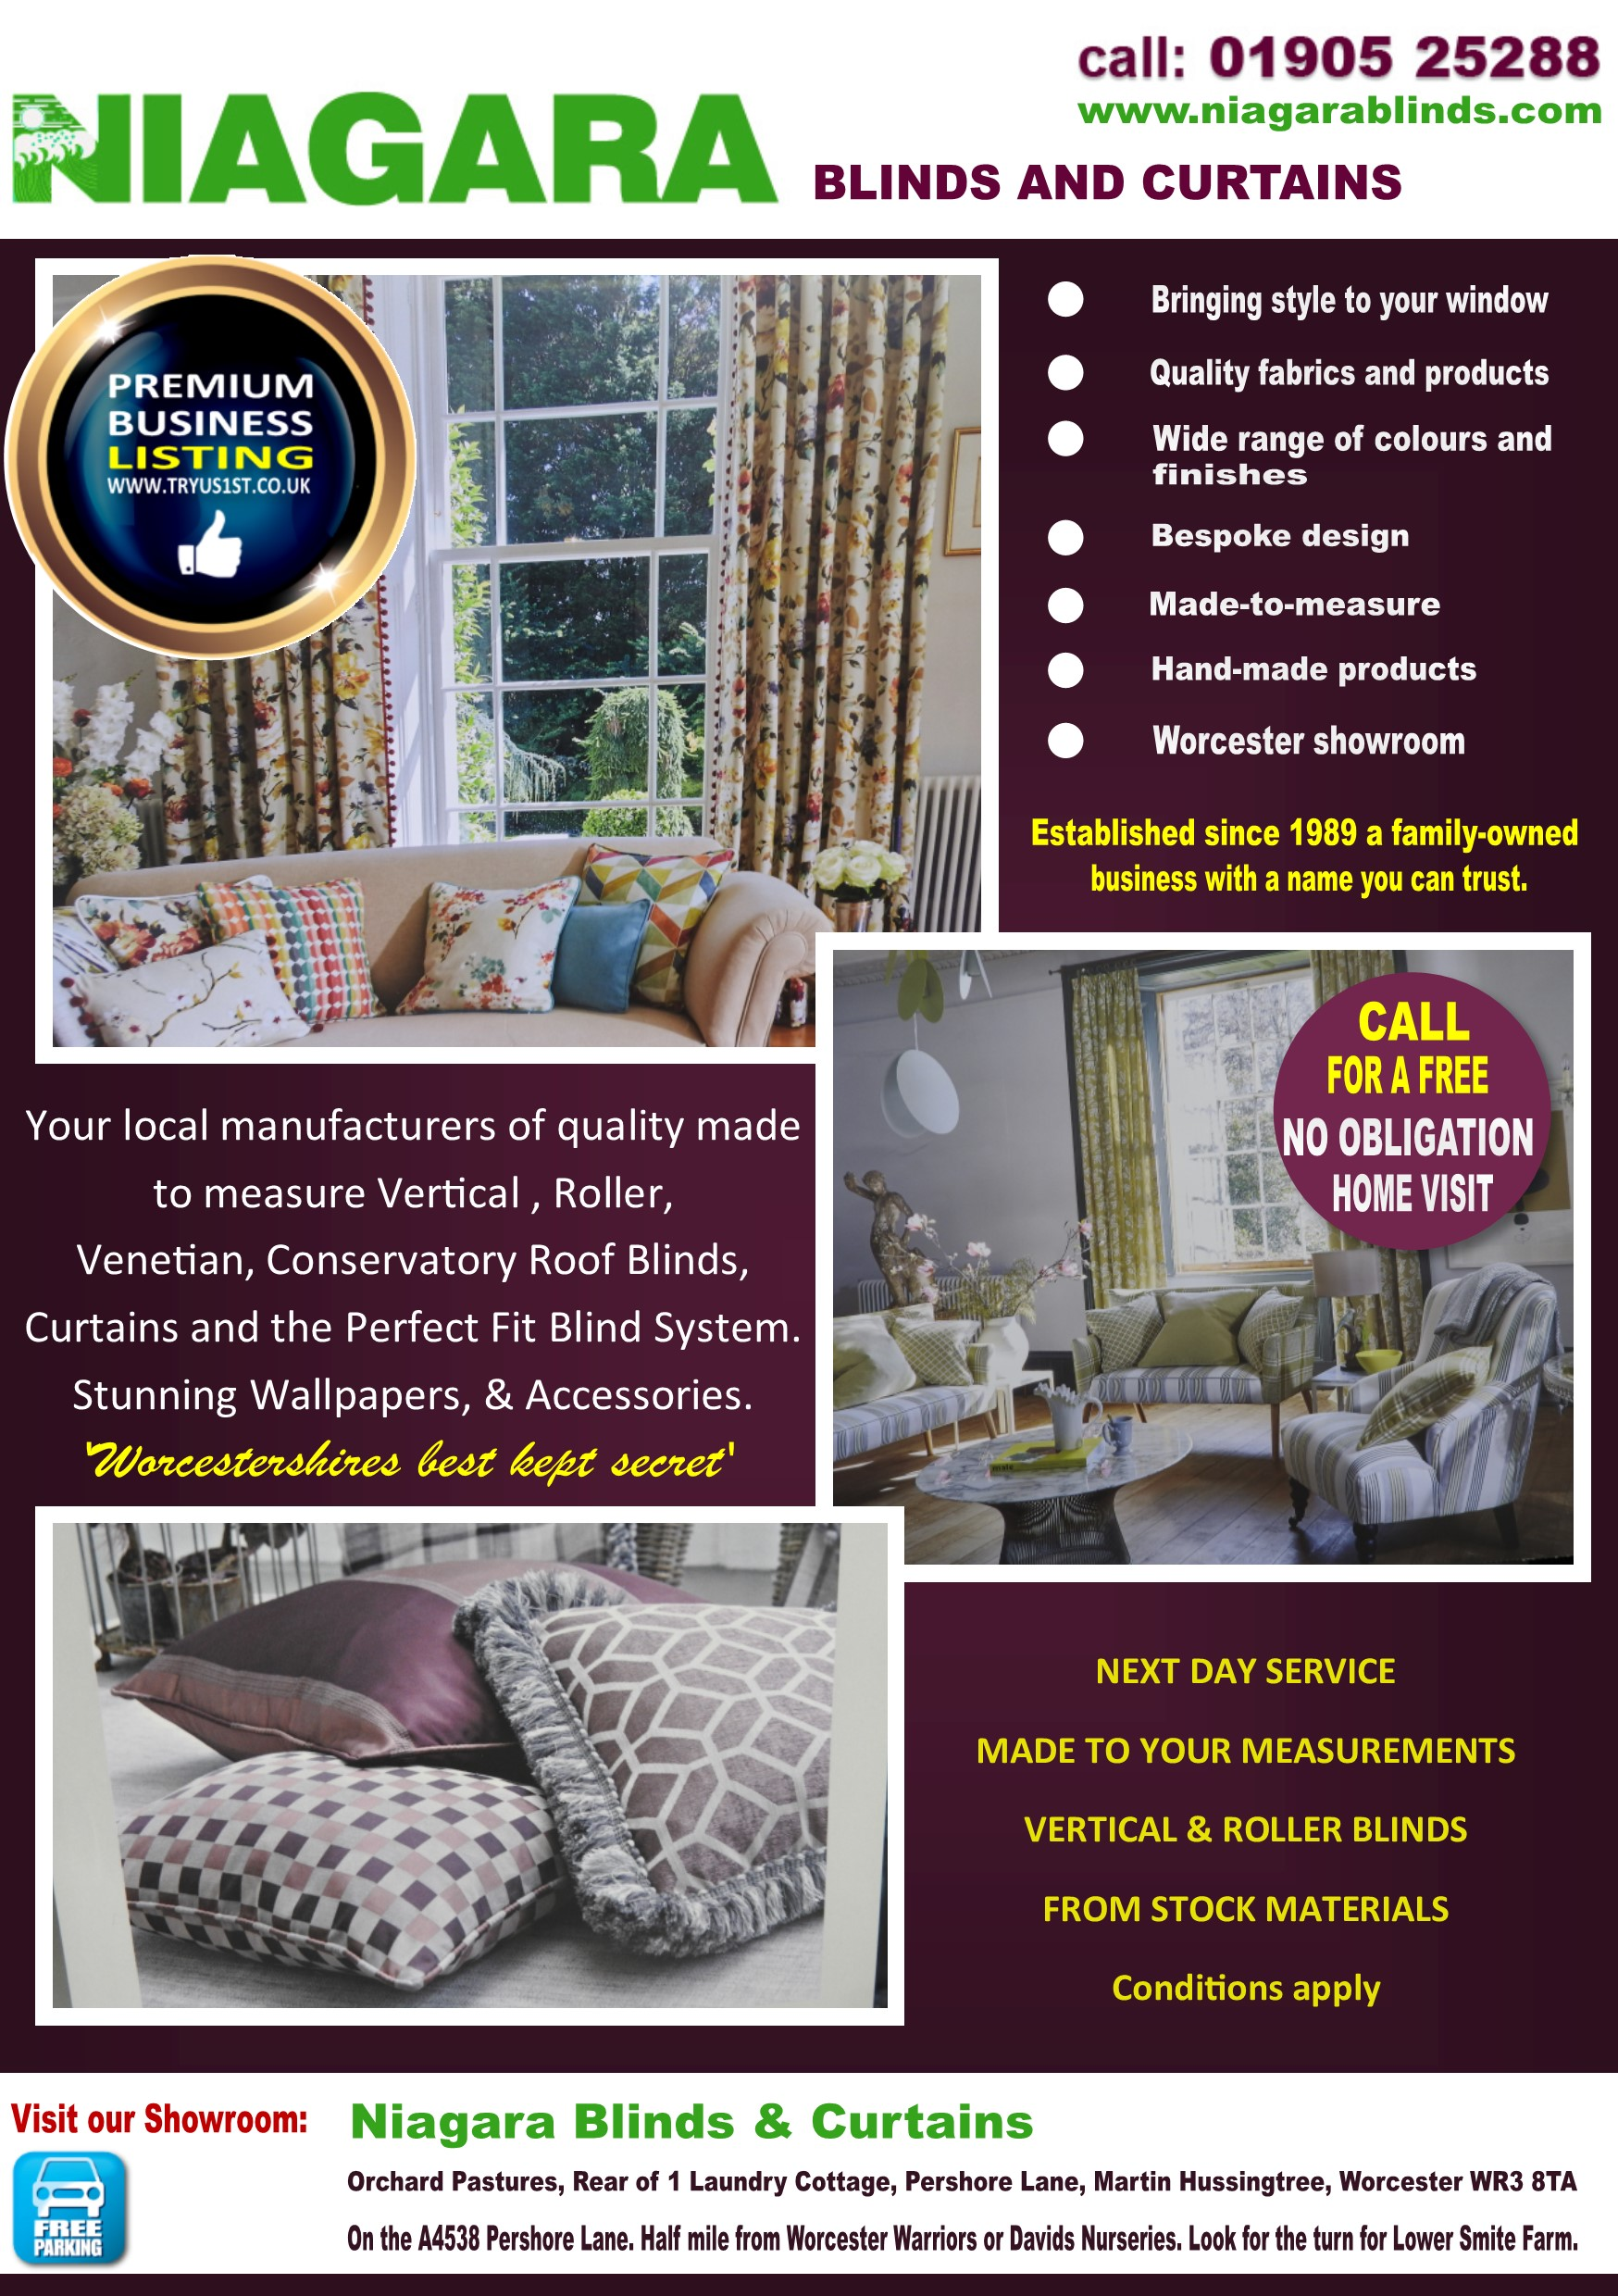 Niagara Blinds and Curtains Droitwich